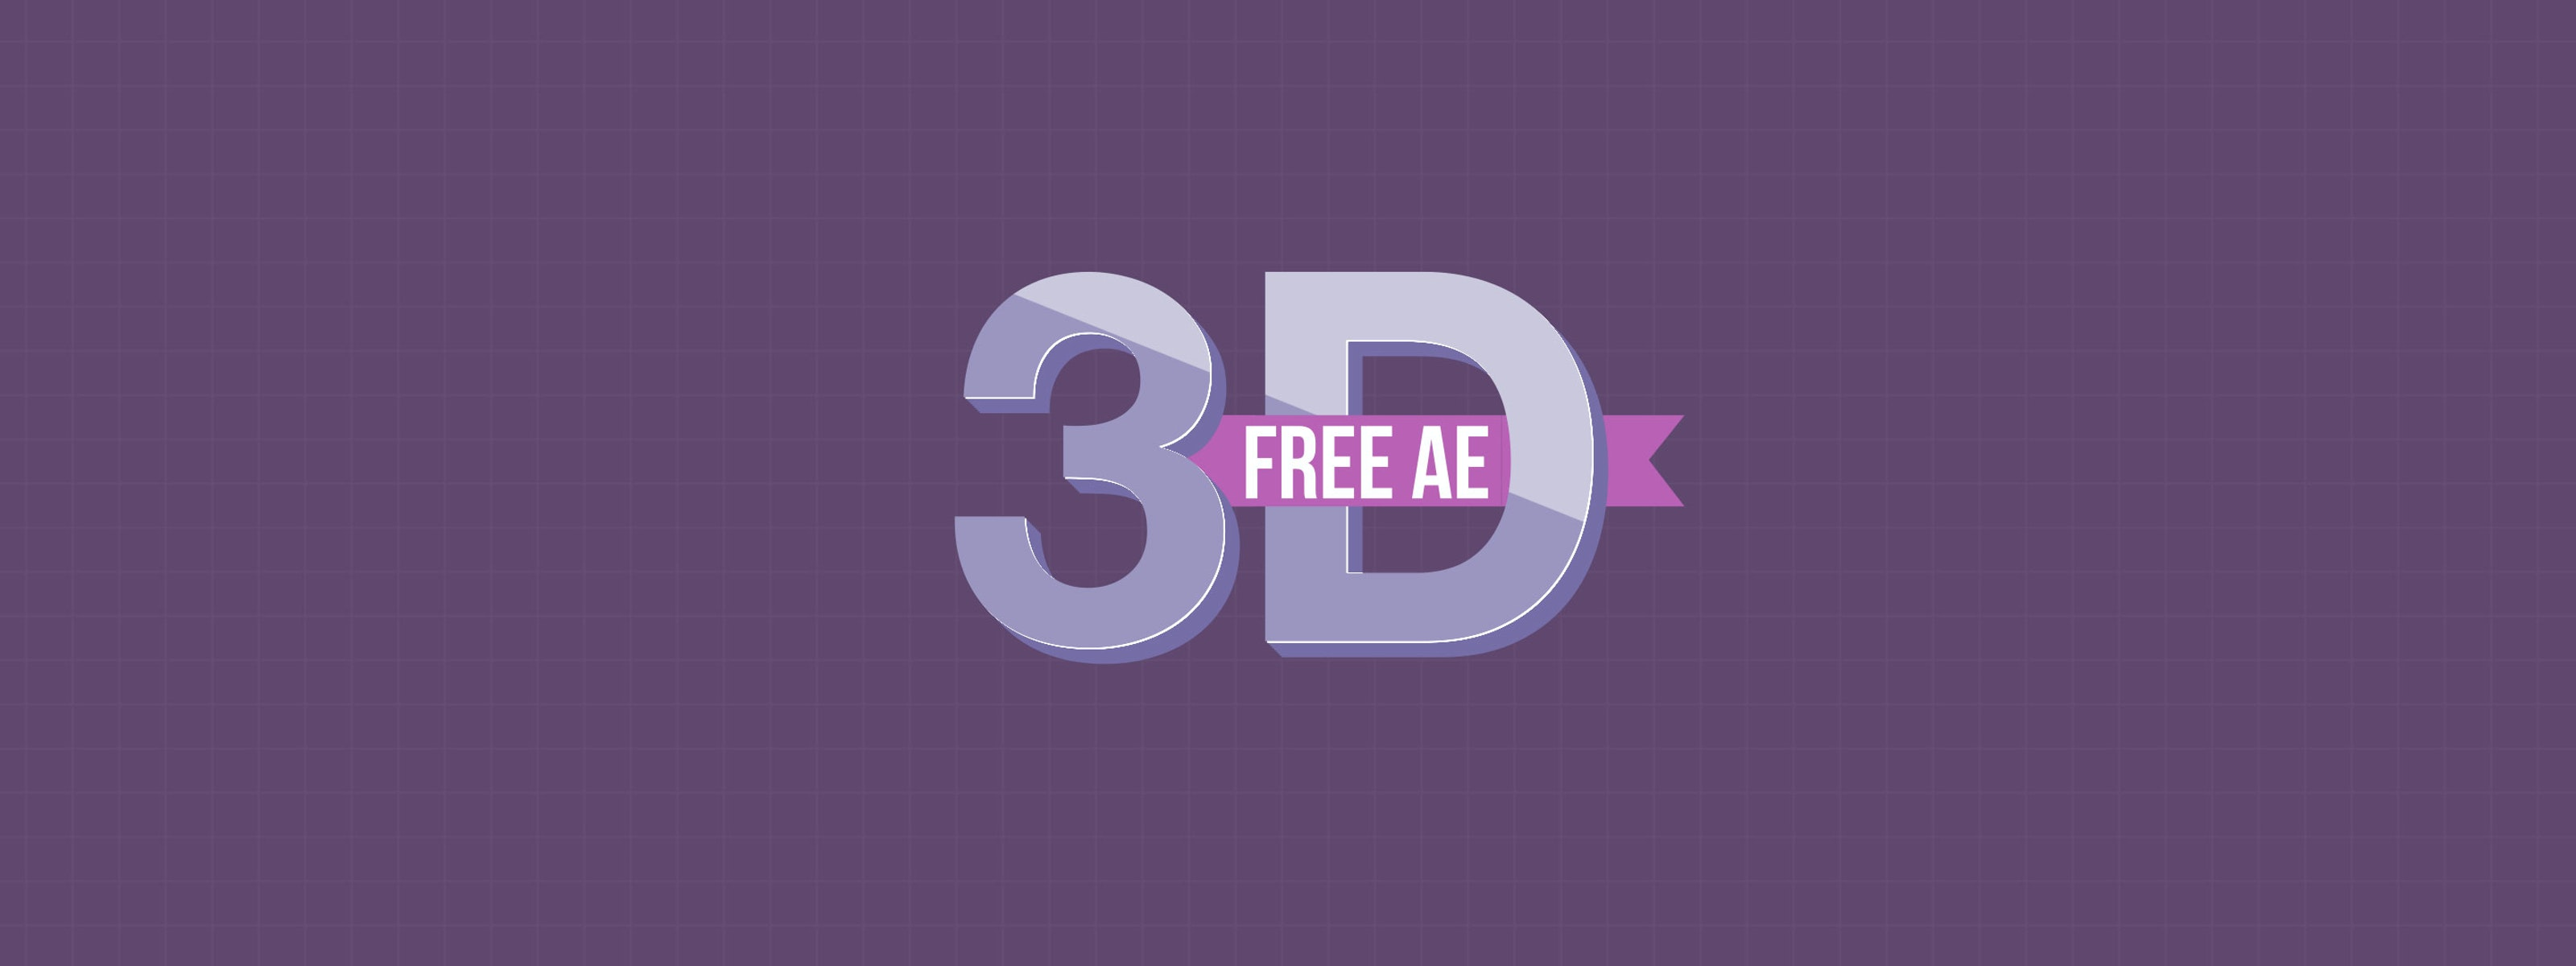 Get Our FREE 3D Text After Effects Template | Motion Array